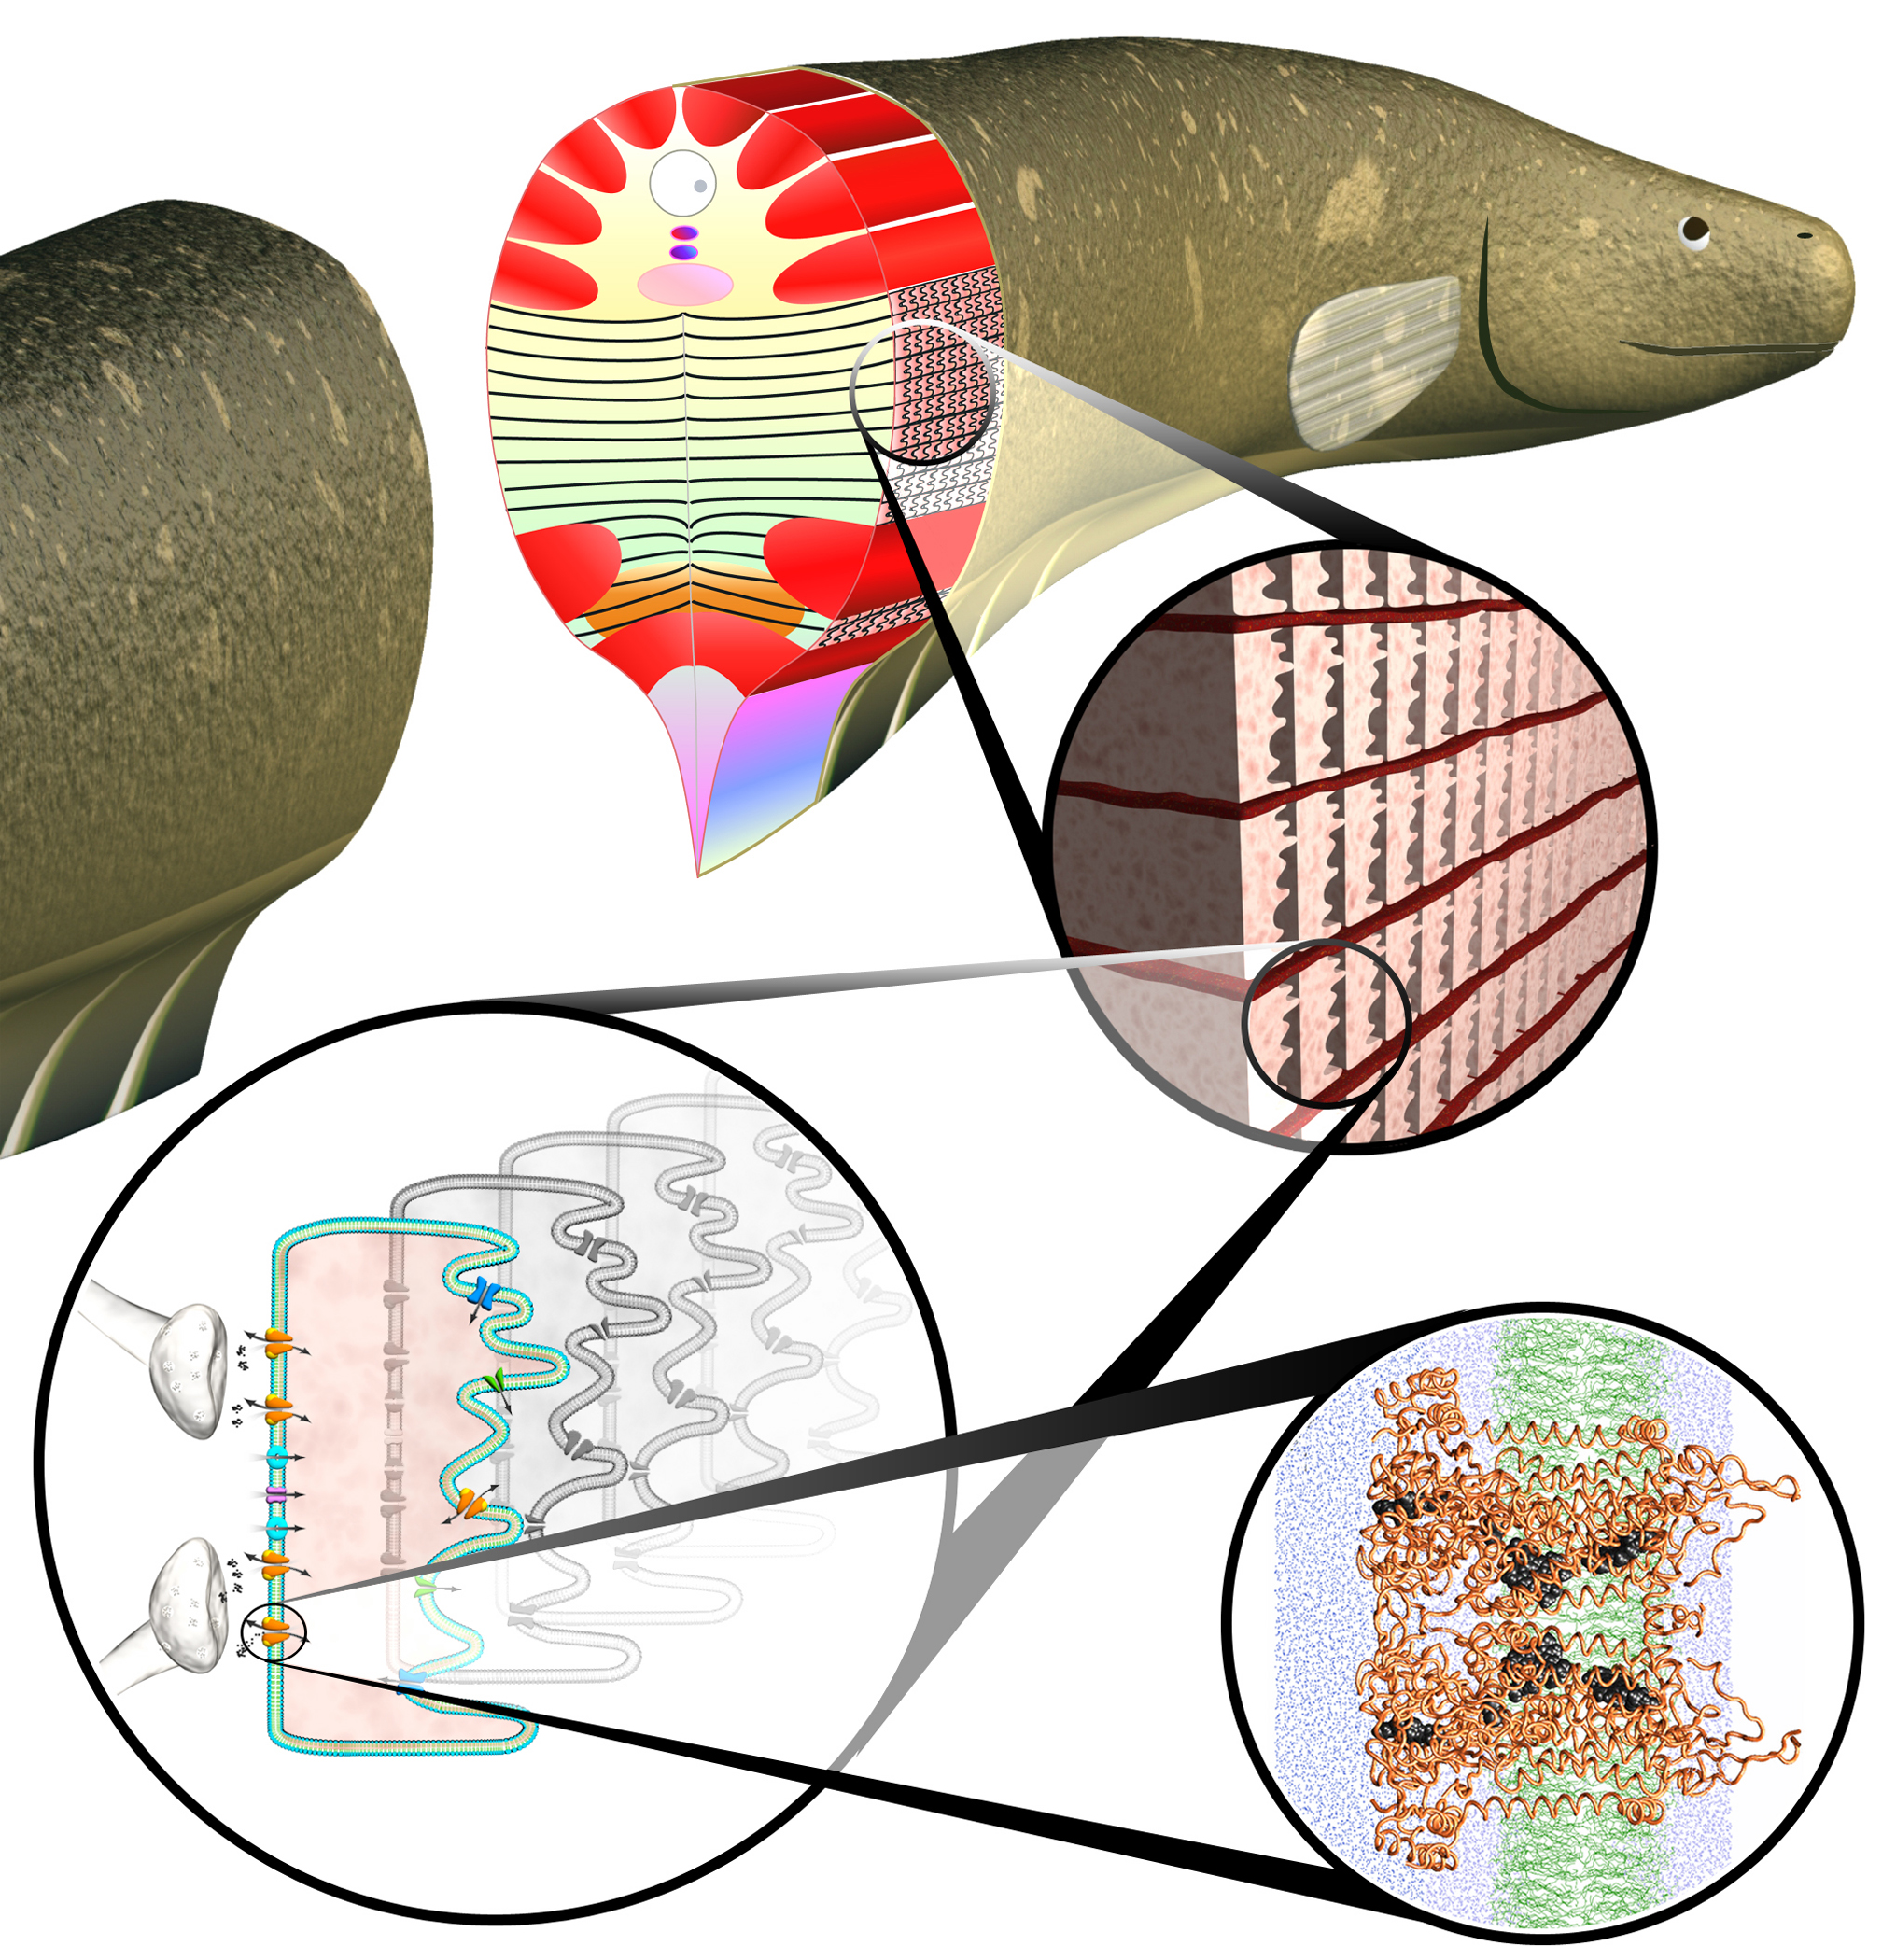 Models Of Eel Cells Suggest Electrifying Possibilities NIST